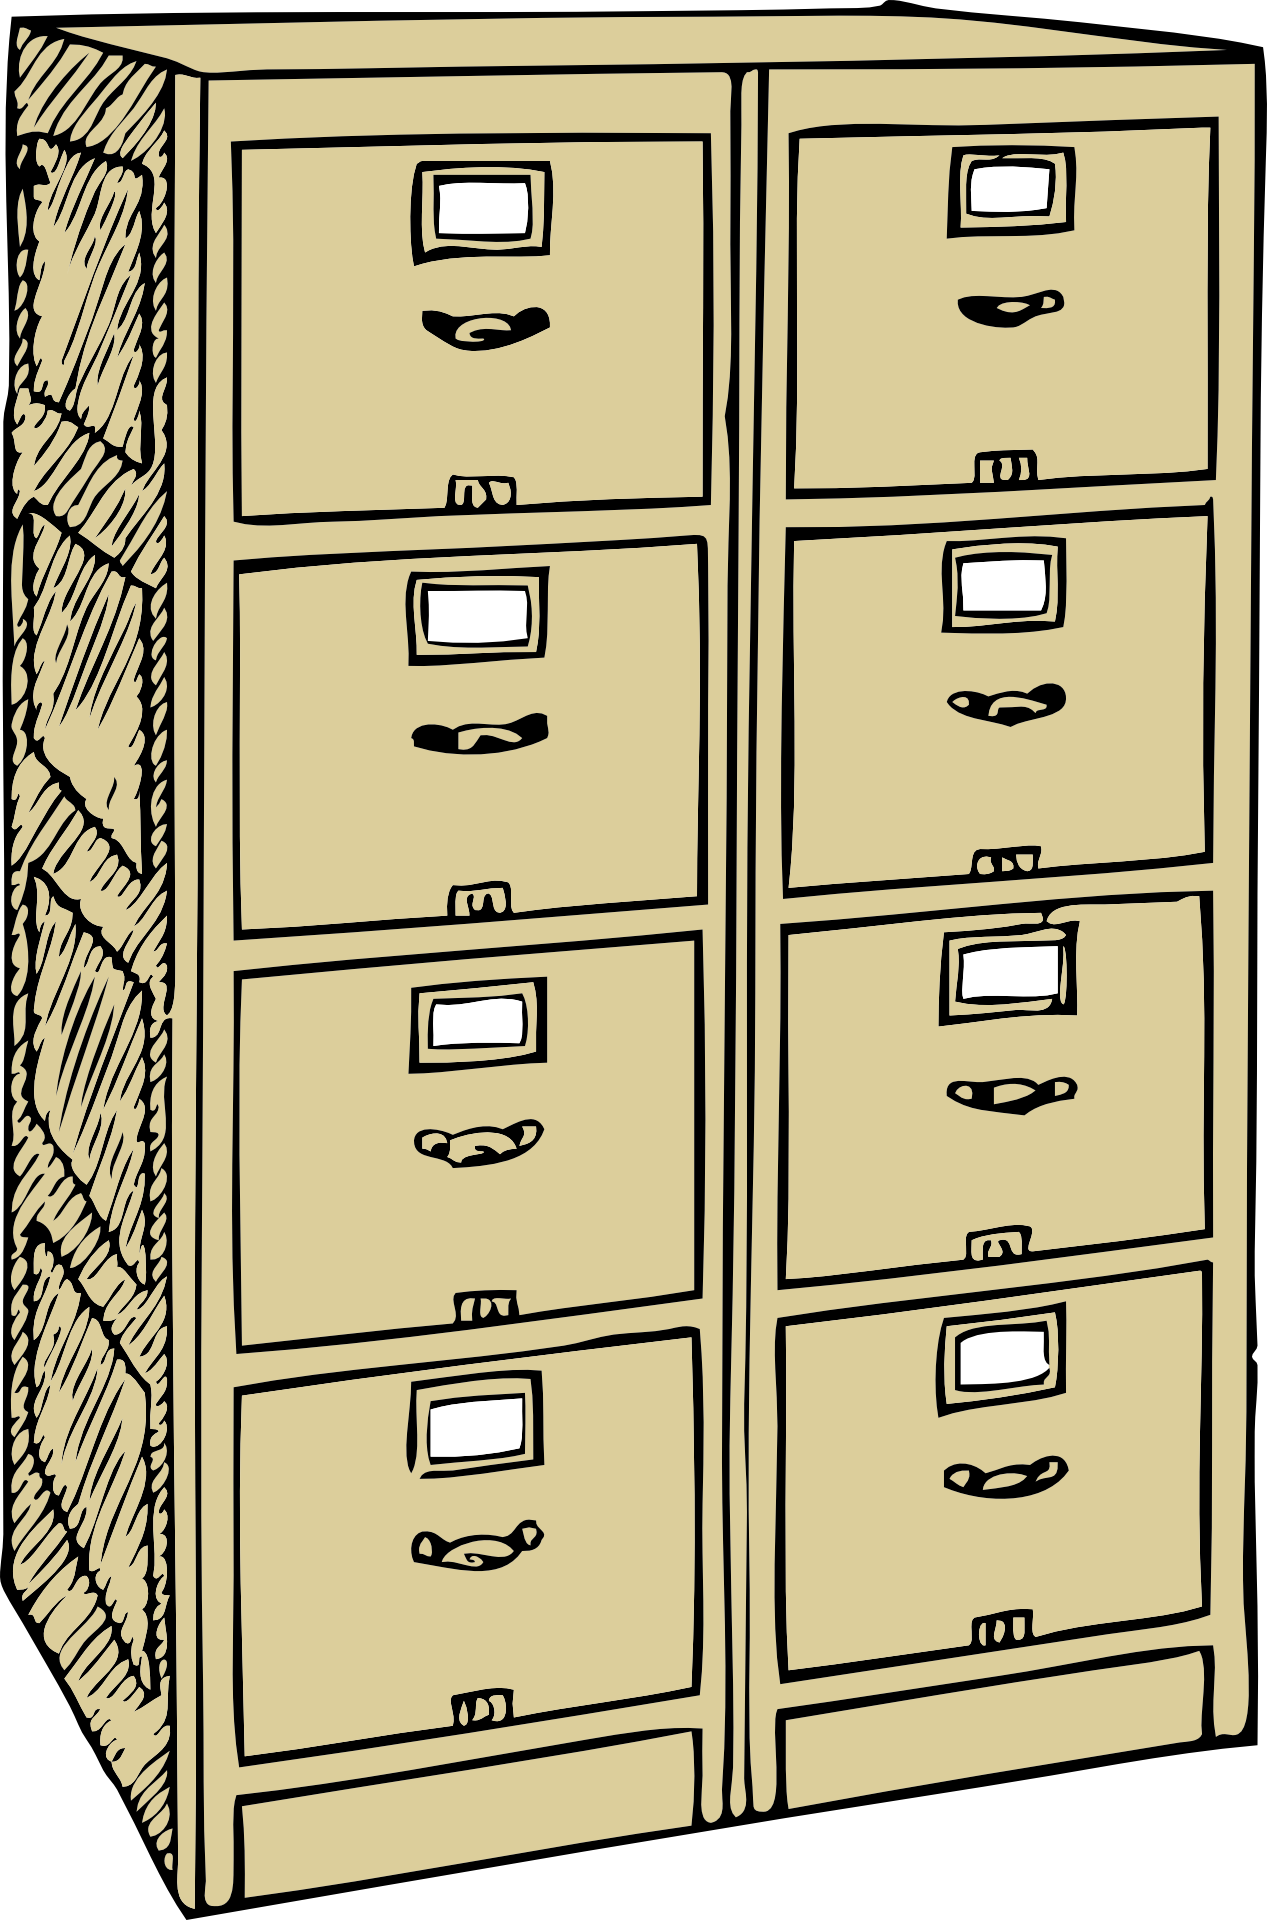 Clipart of filing cabinets free image.